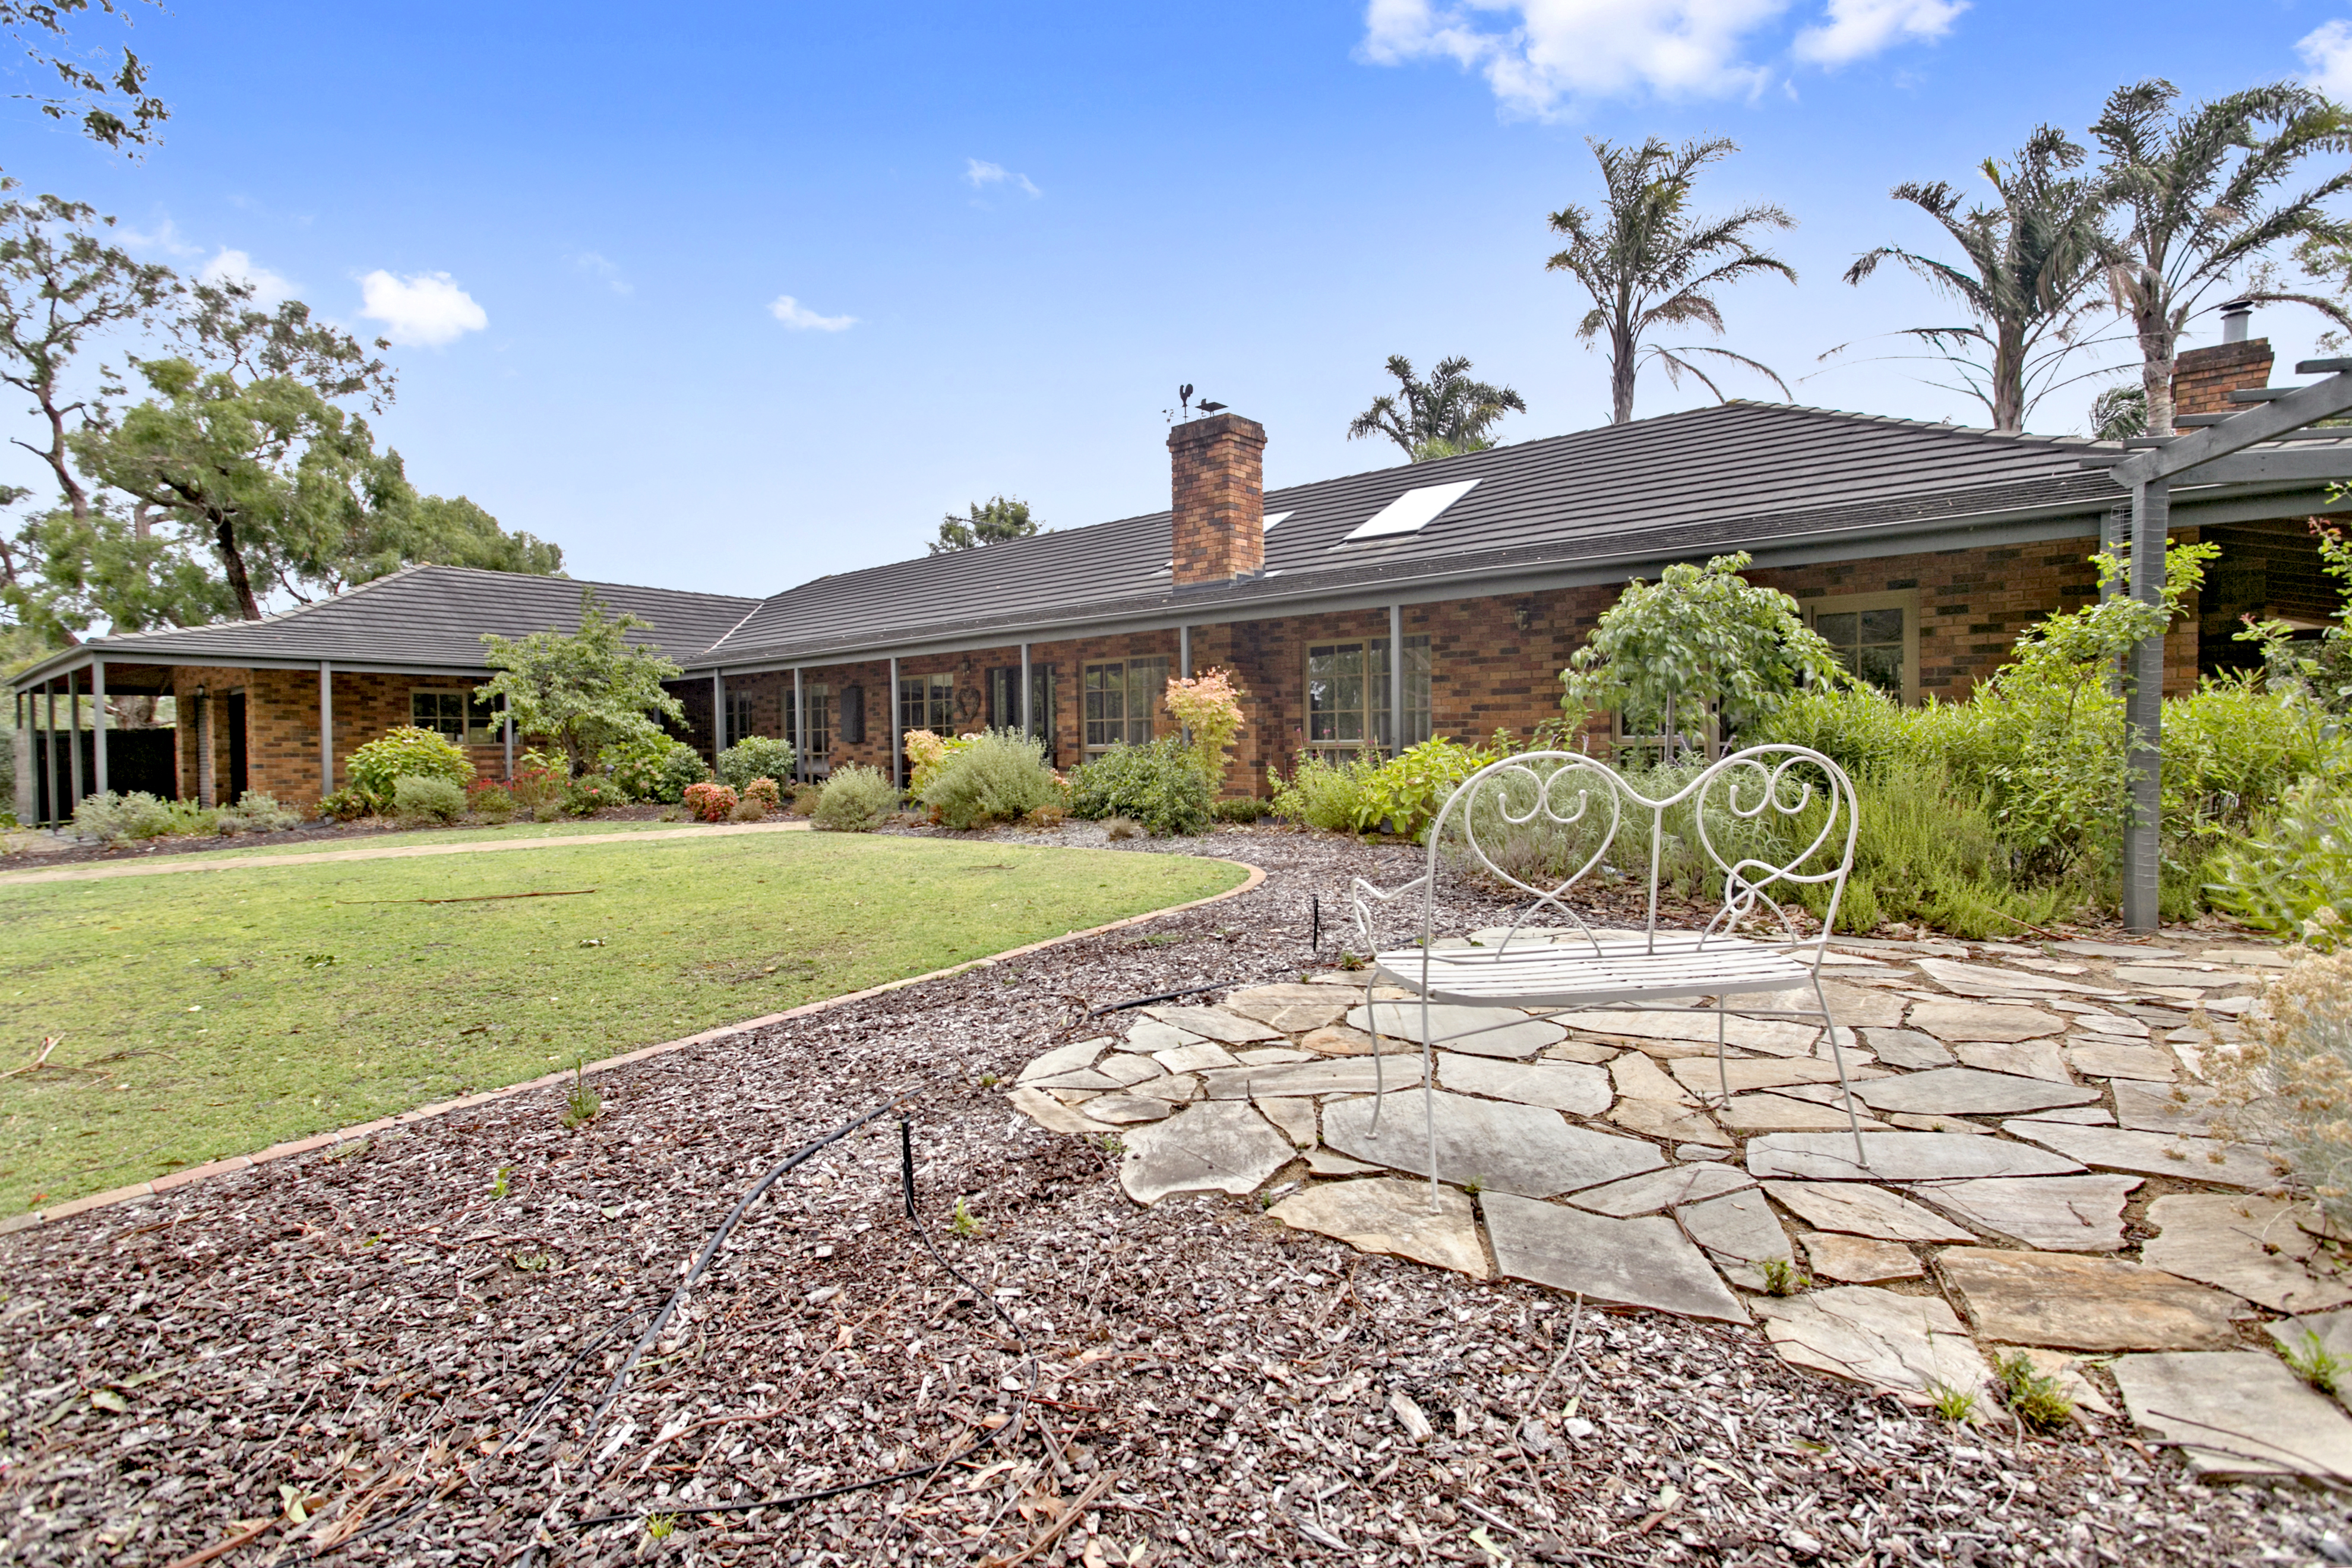 595 Robinsons Road, LANGWARRIN, VIC, 3910 - Image